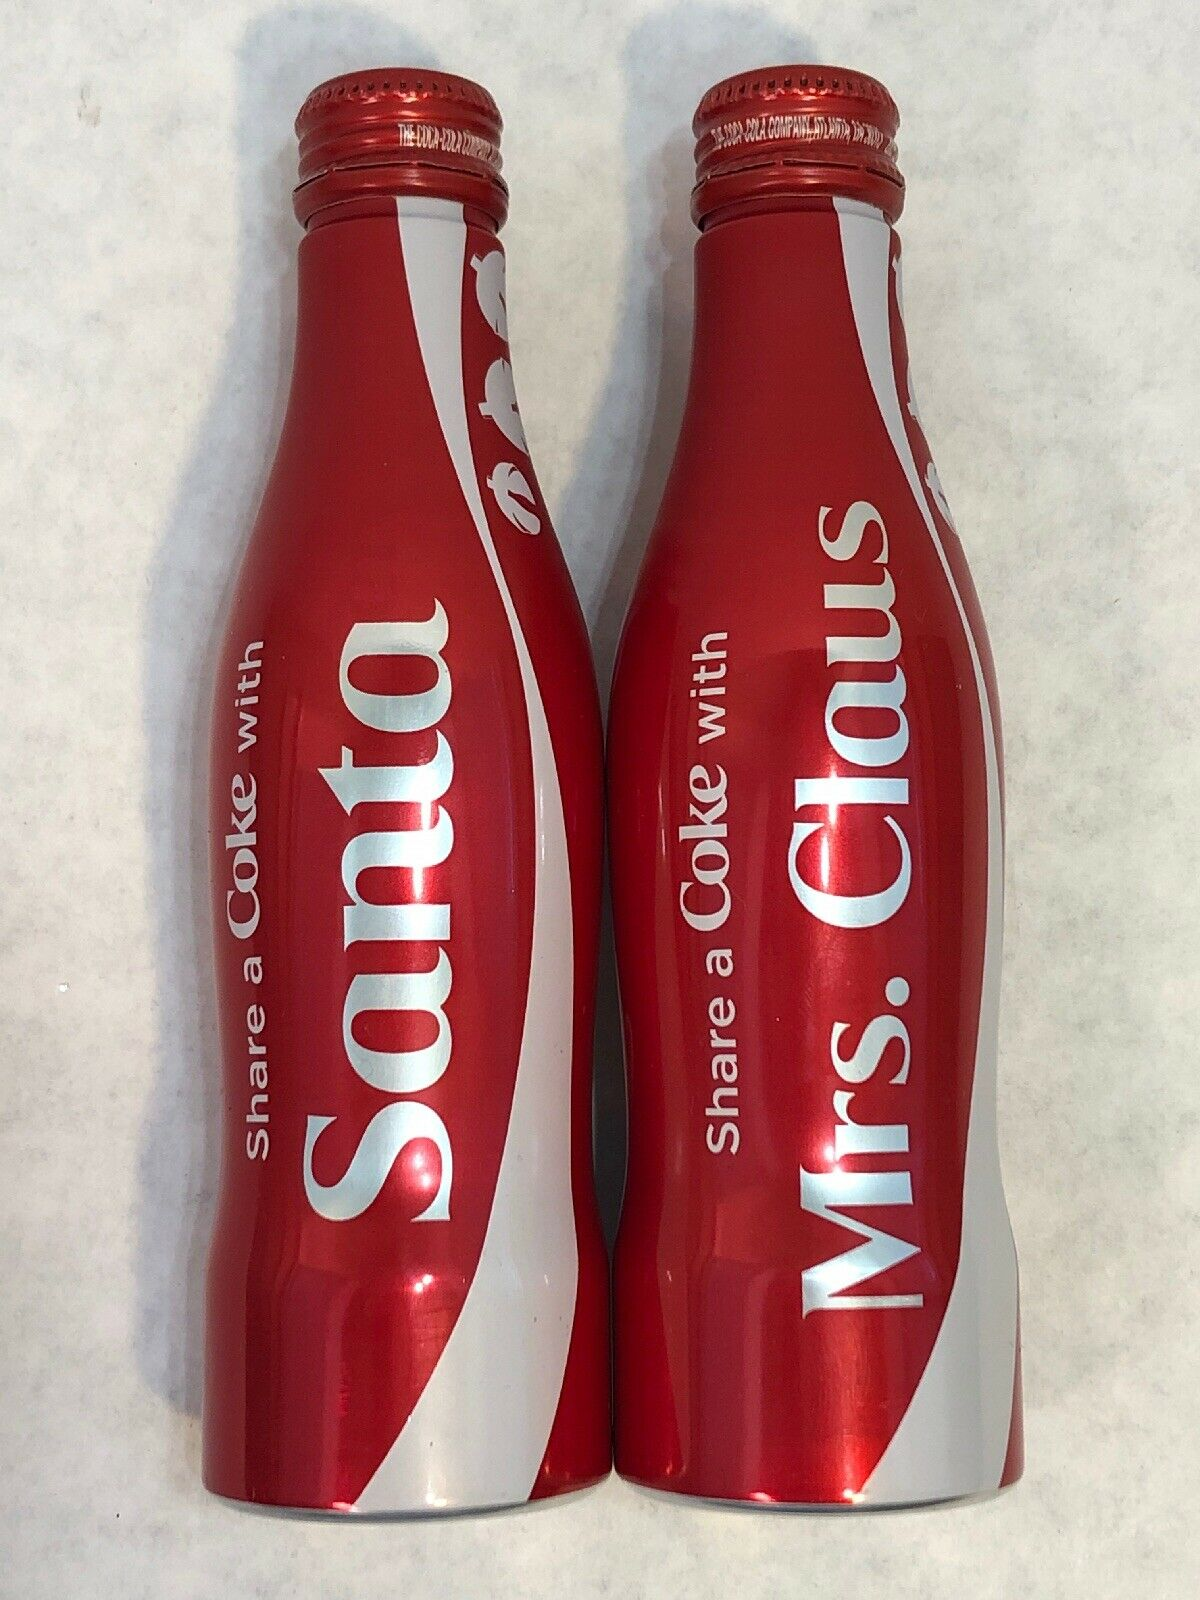 Coca-Cola Metallic Red Bottle Share a Coke with Your Love Valentine/'s Day